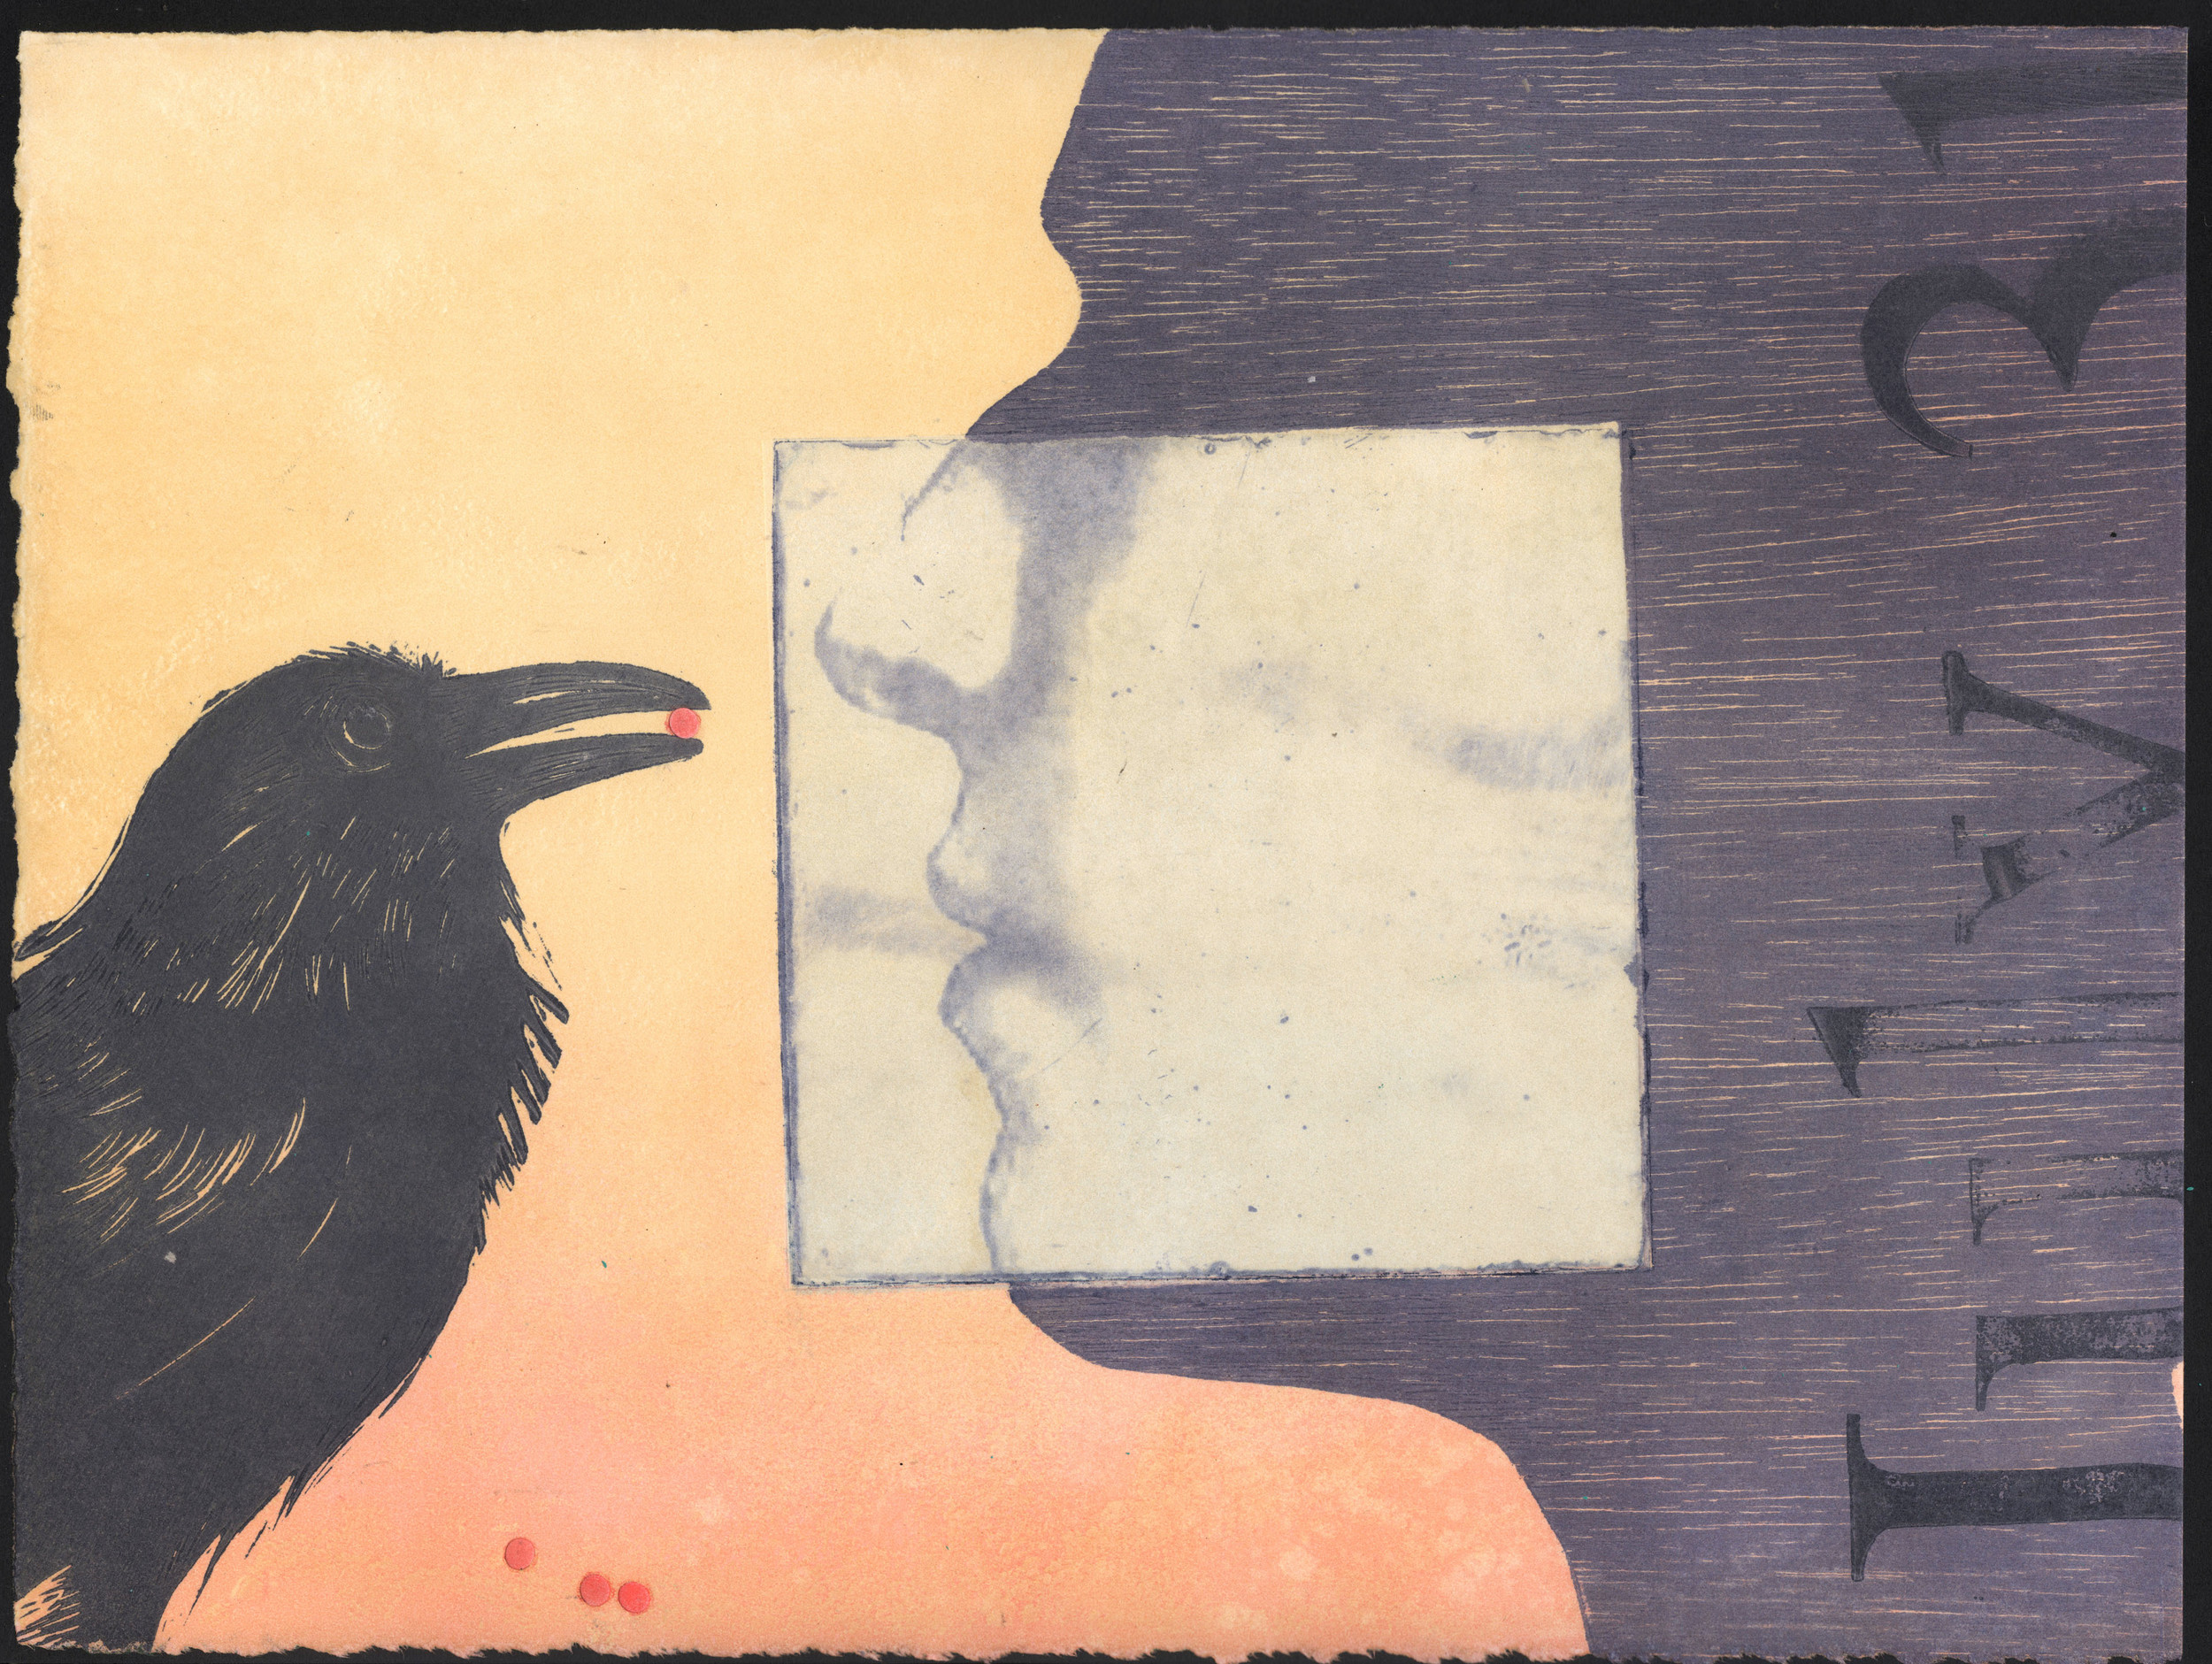 """Book of Days, July 31,"" a monoprint, is among Donald Martin's works in drawing, book arts, sculpture, painting and prints on display through June 20 at South Gallery at Wilson Center for the Arts, FSCJ's South Campus. Martin discusses his work May 22."